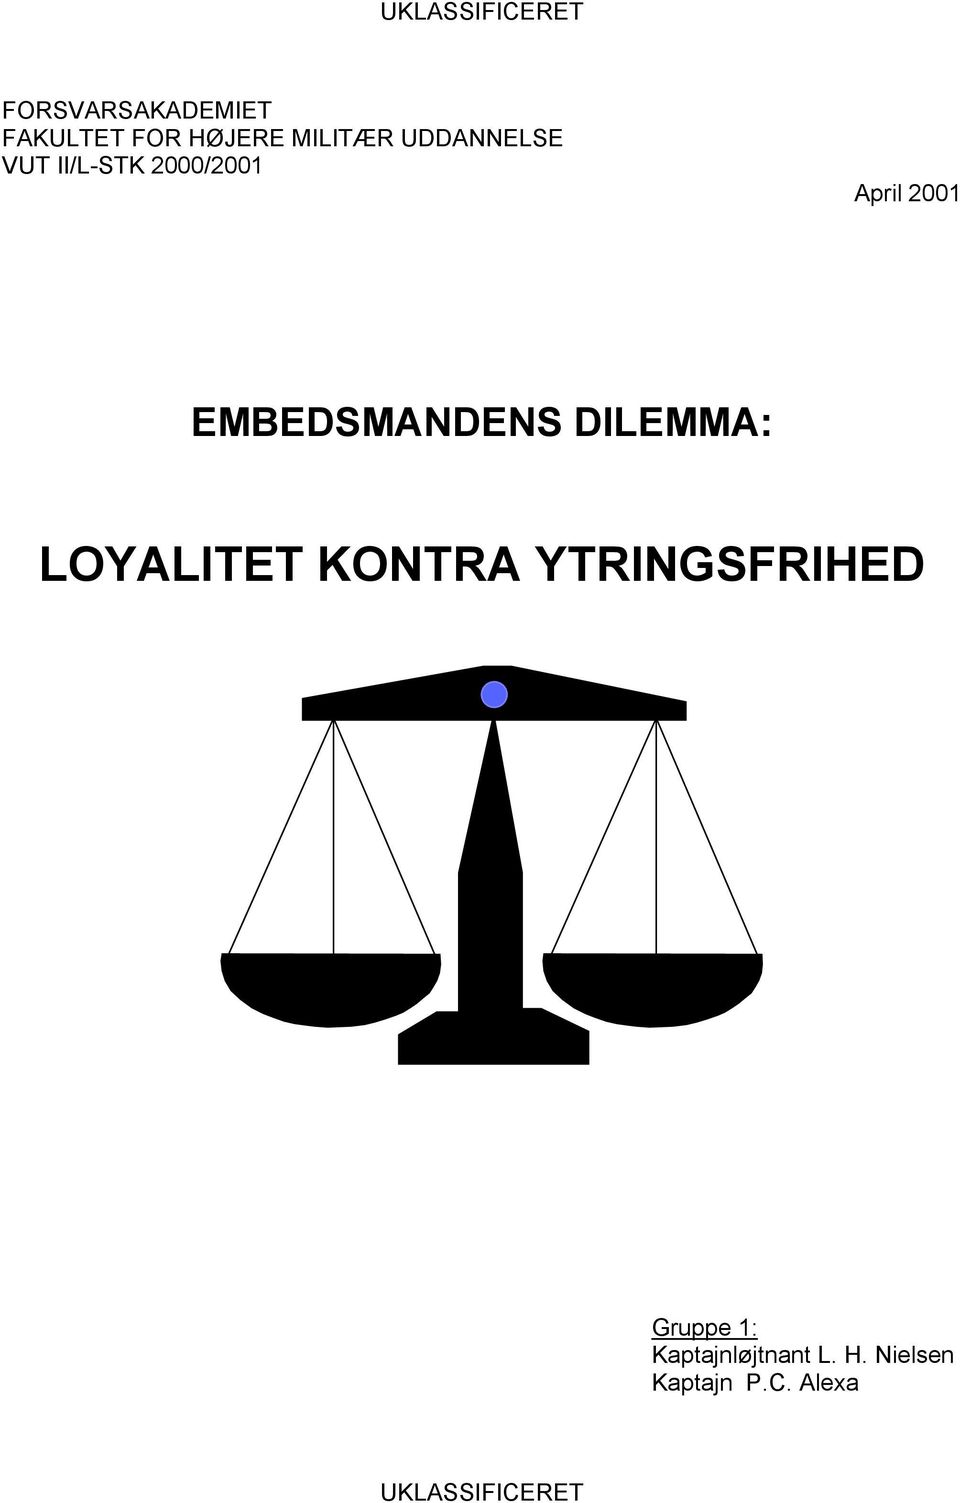 EMBEDSMANDENS DILEMMA: LOYALITET KONTRA